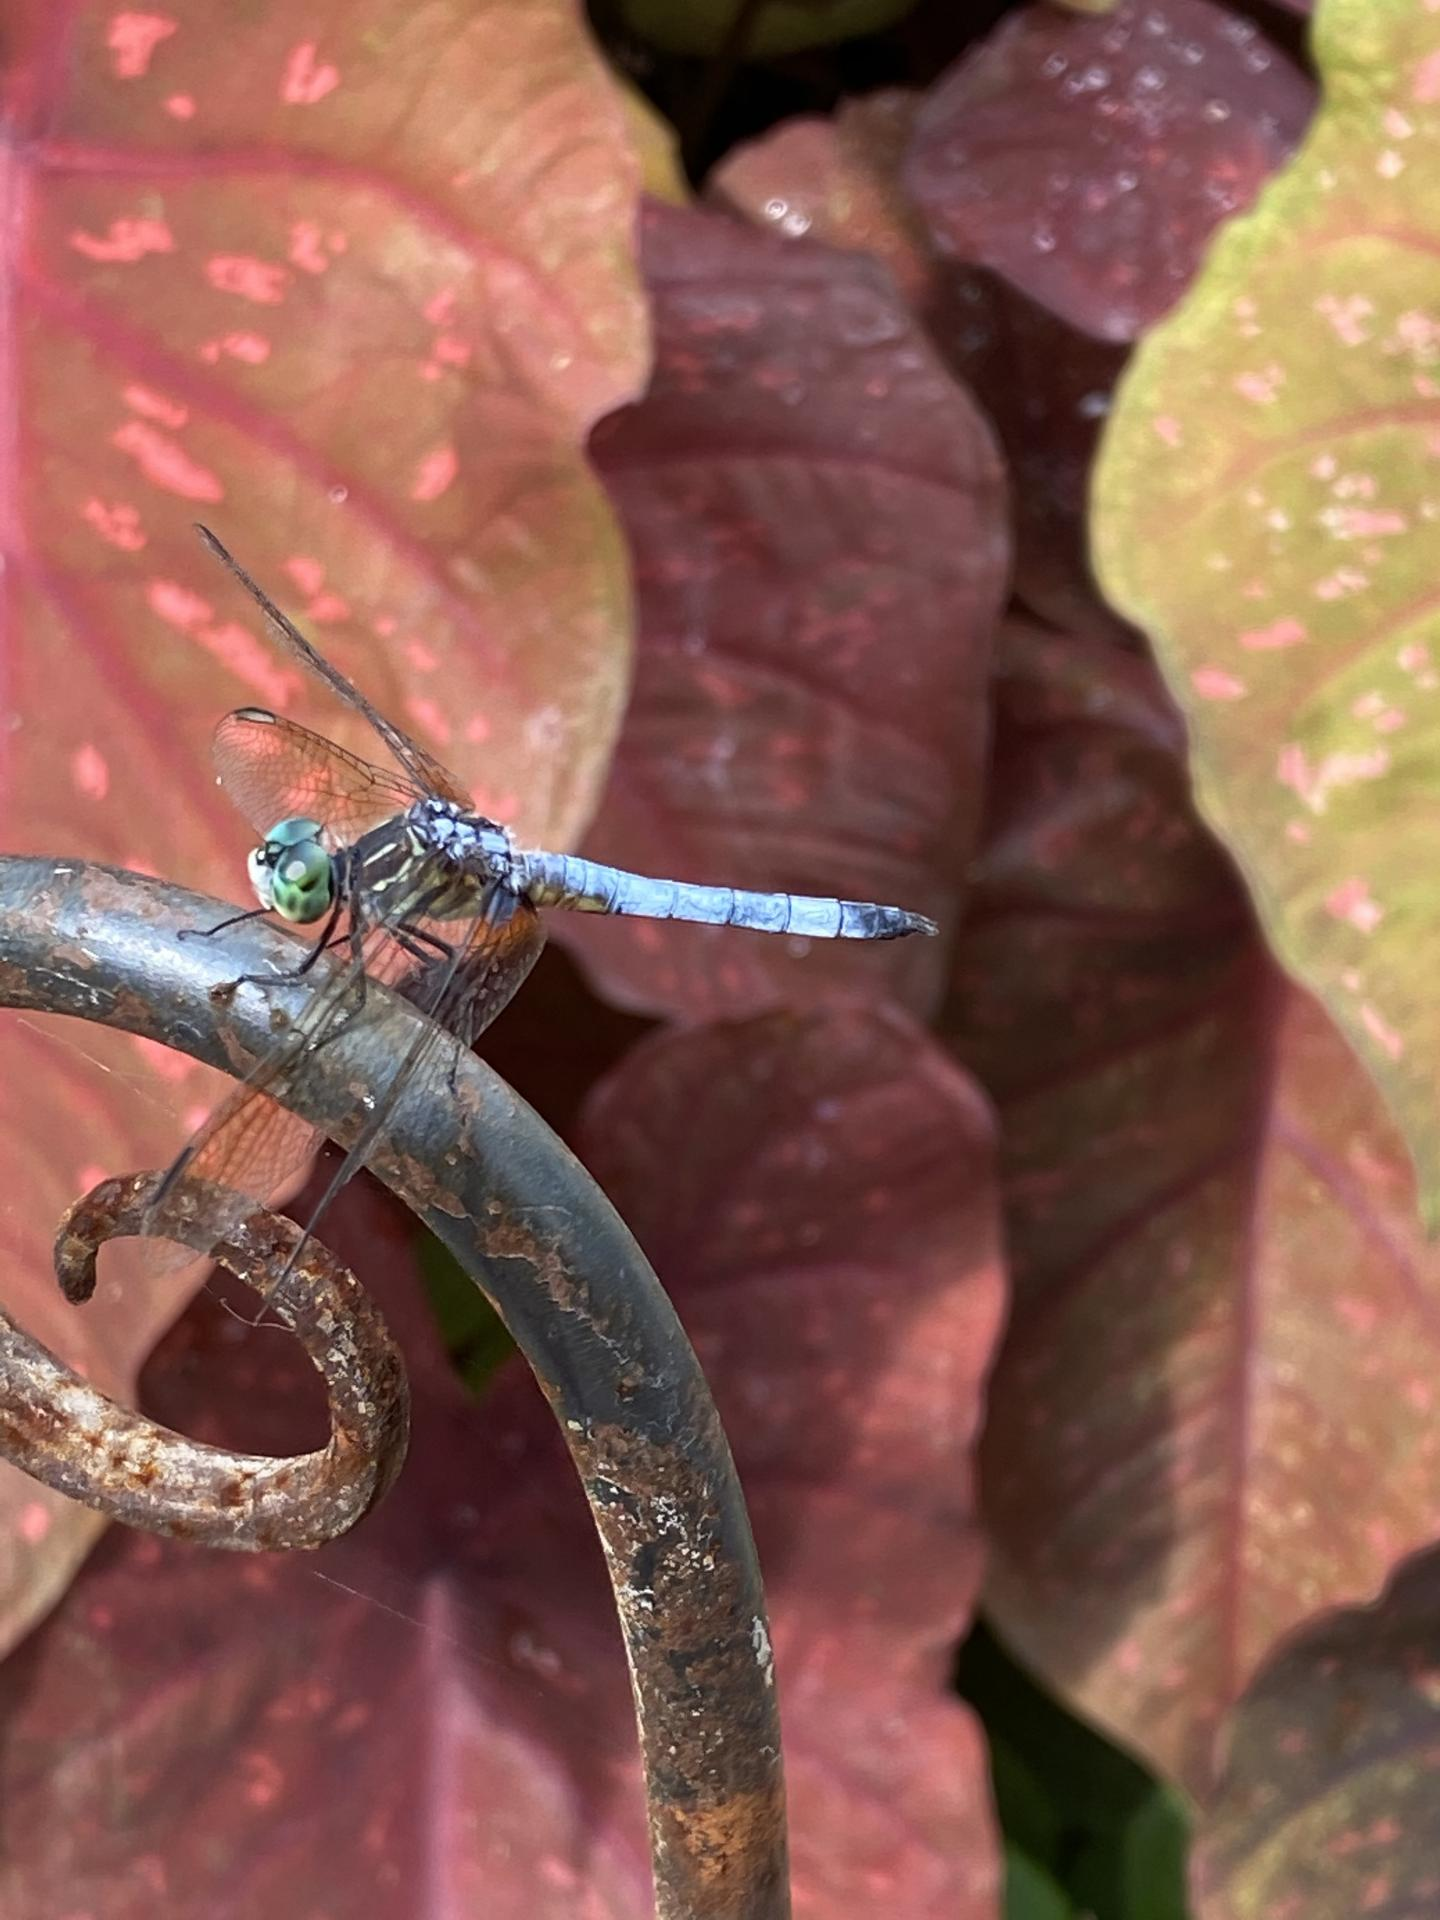 An adult male blue dasher